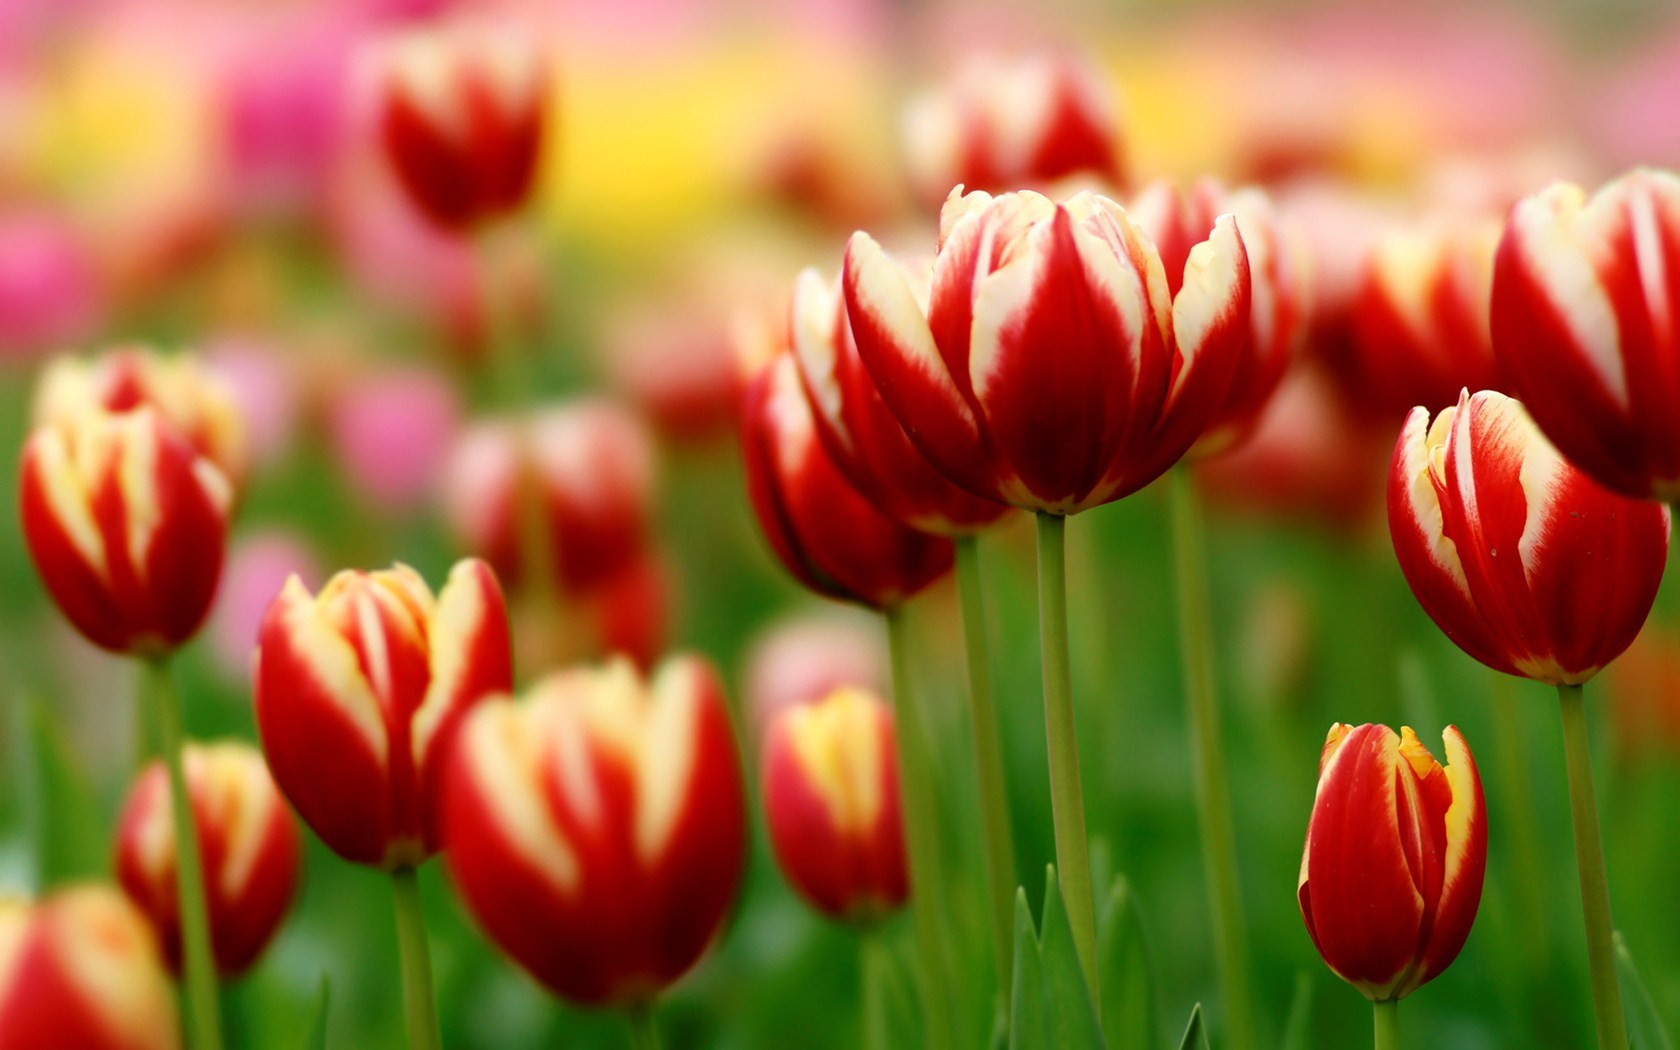 spring city tulips wallpaper - photo #44